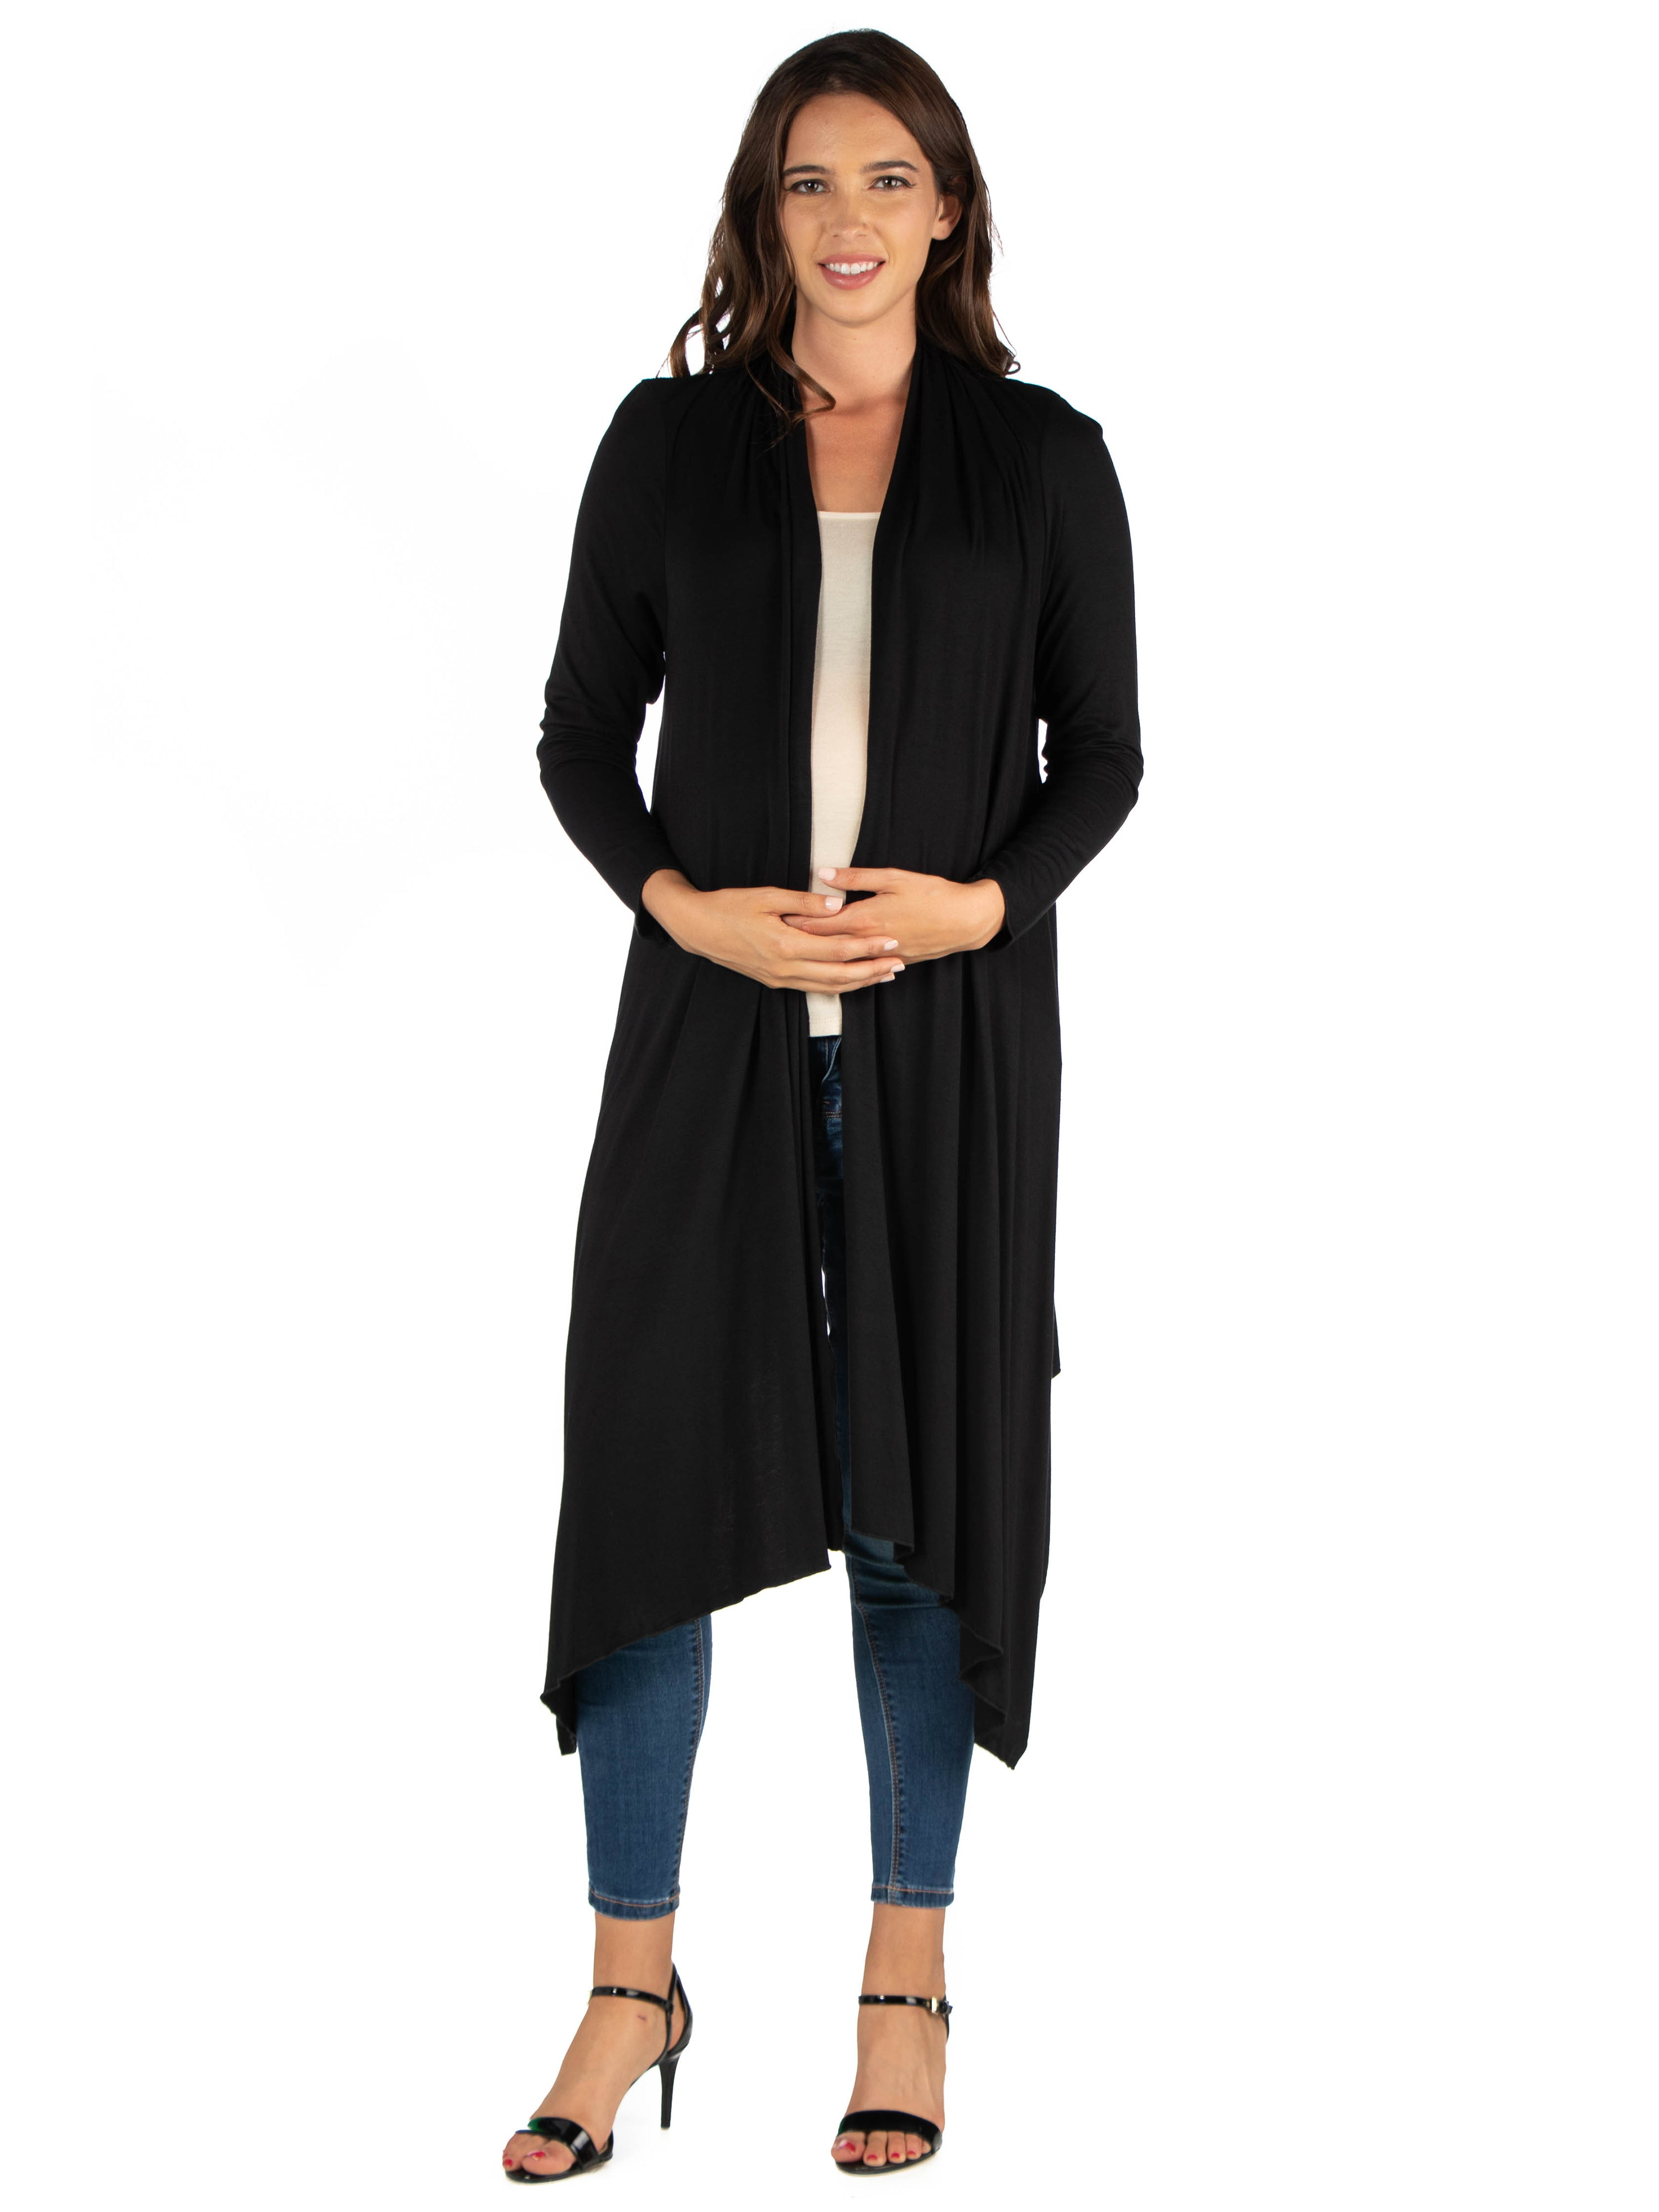 24seven Comfort Apparel Extra Long Open Front Maternity Cardigan-SHRUGS-24Seven Comfort Apparel-CHARCOAL-S-24/7 Comfort Apparel